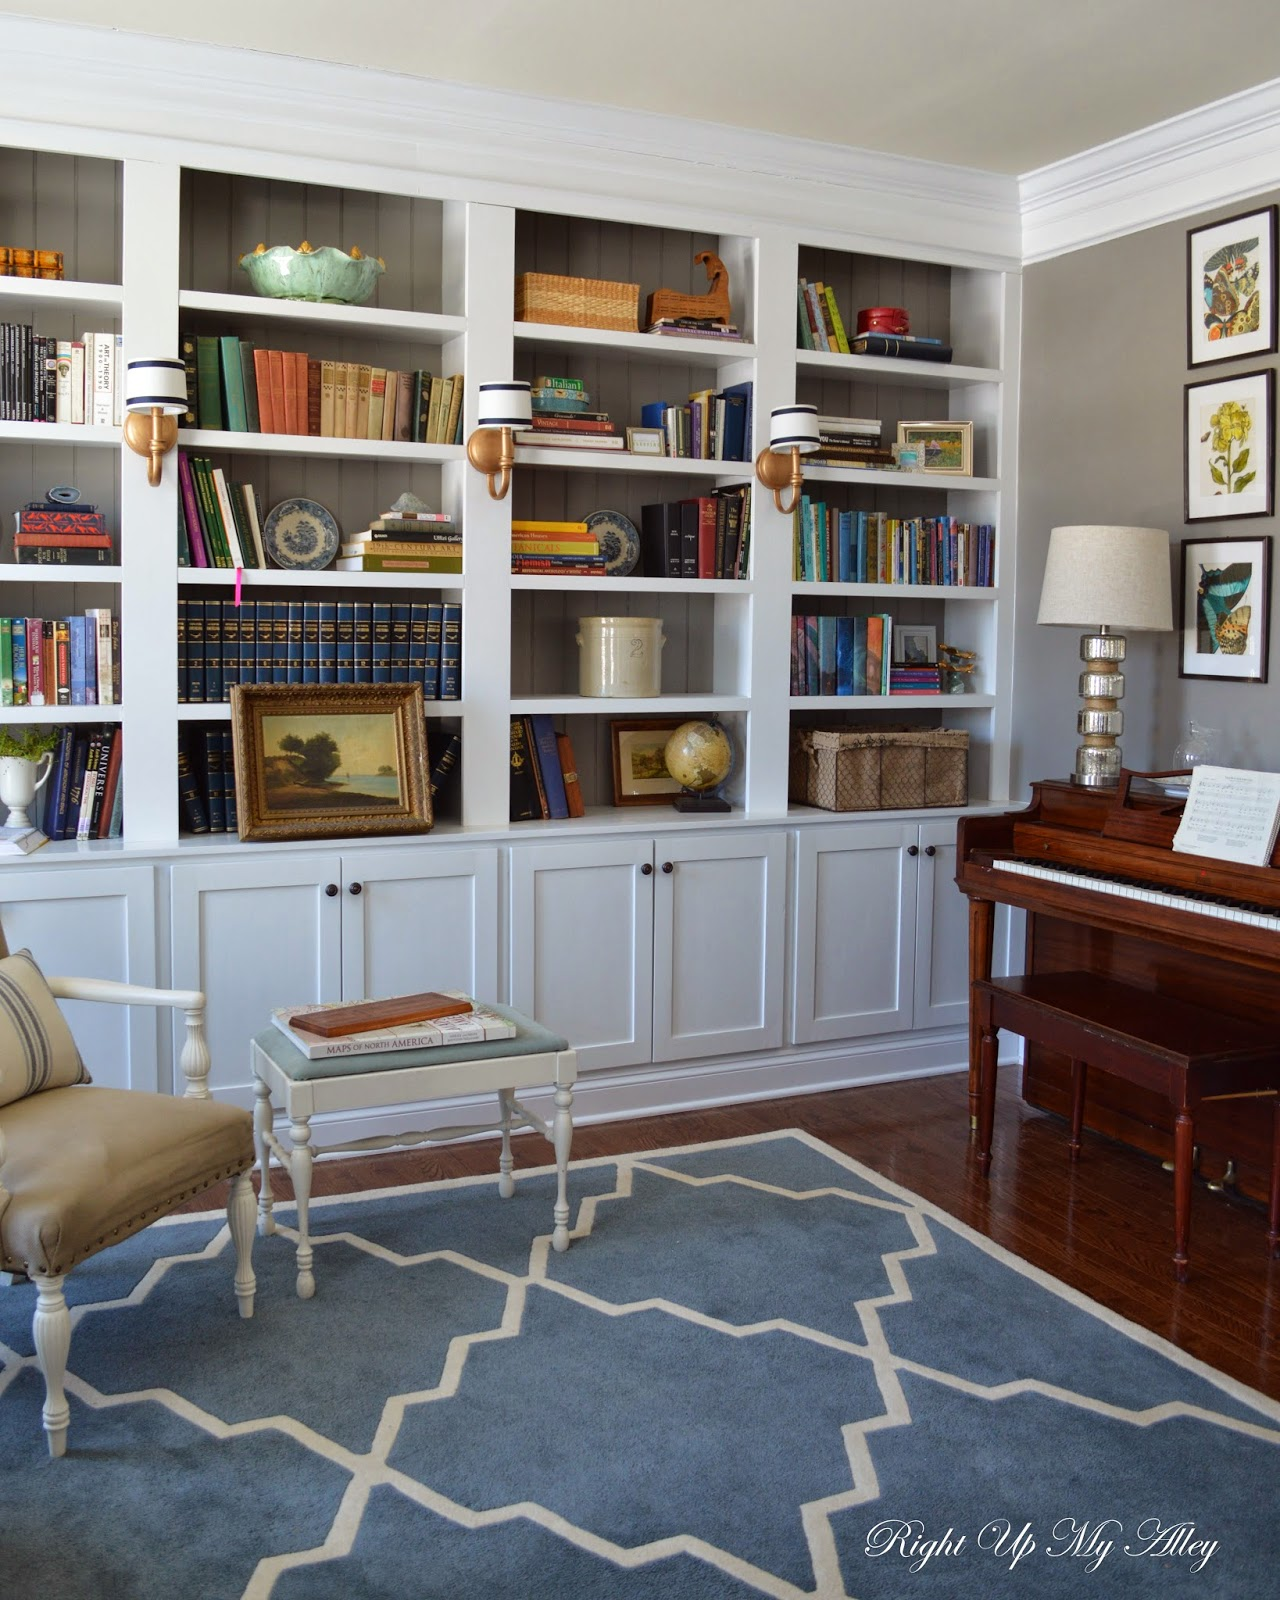 Built In Bookshelves: Right Up My Alley: Simple Tips: Rub N' Buff Lighting